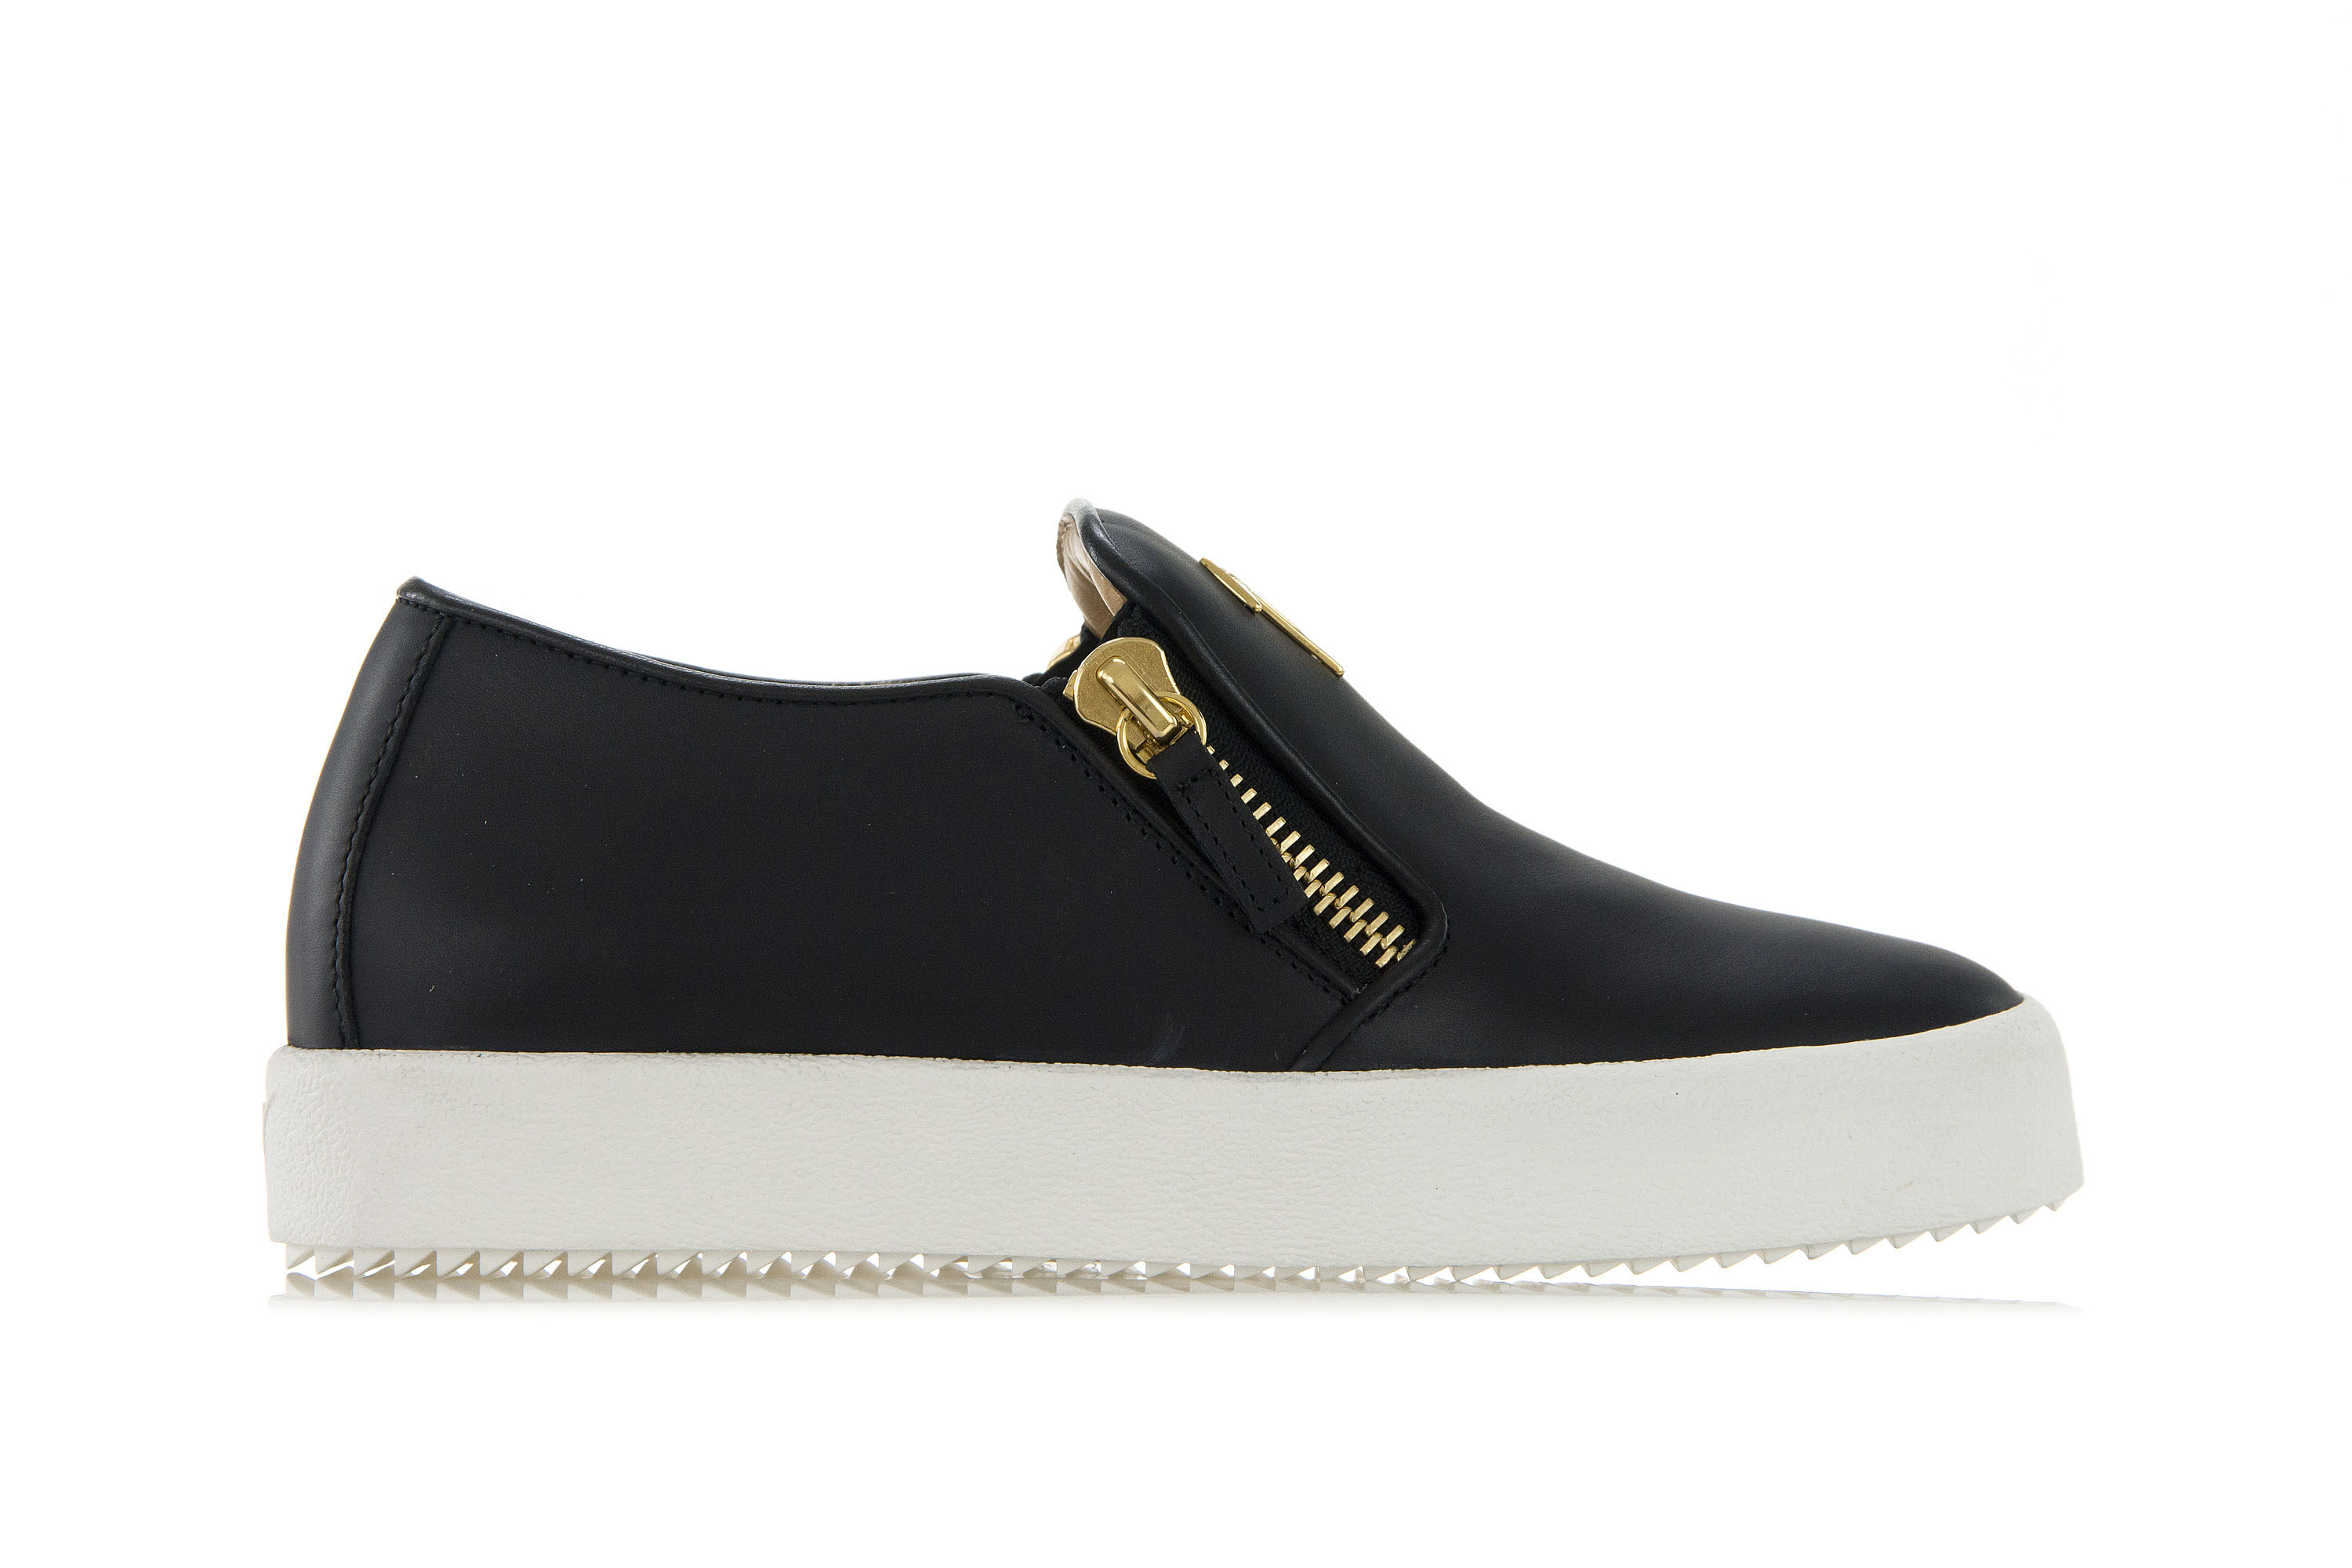 GIUSEPPE-ZANOTTI-DESIGN-Womens-Shoes-Sneakers-EVE-Black-